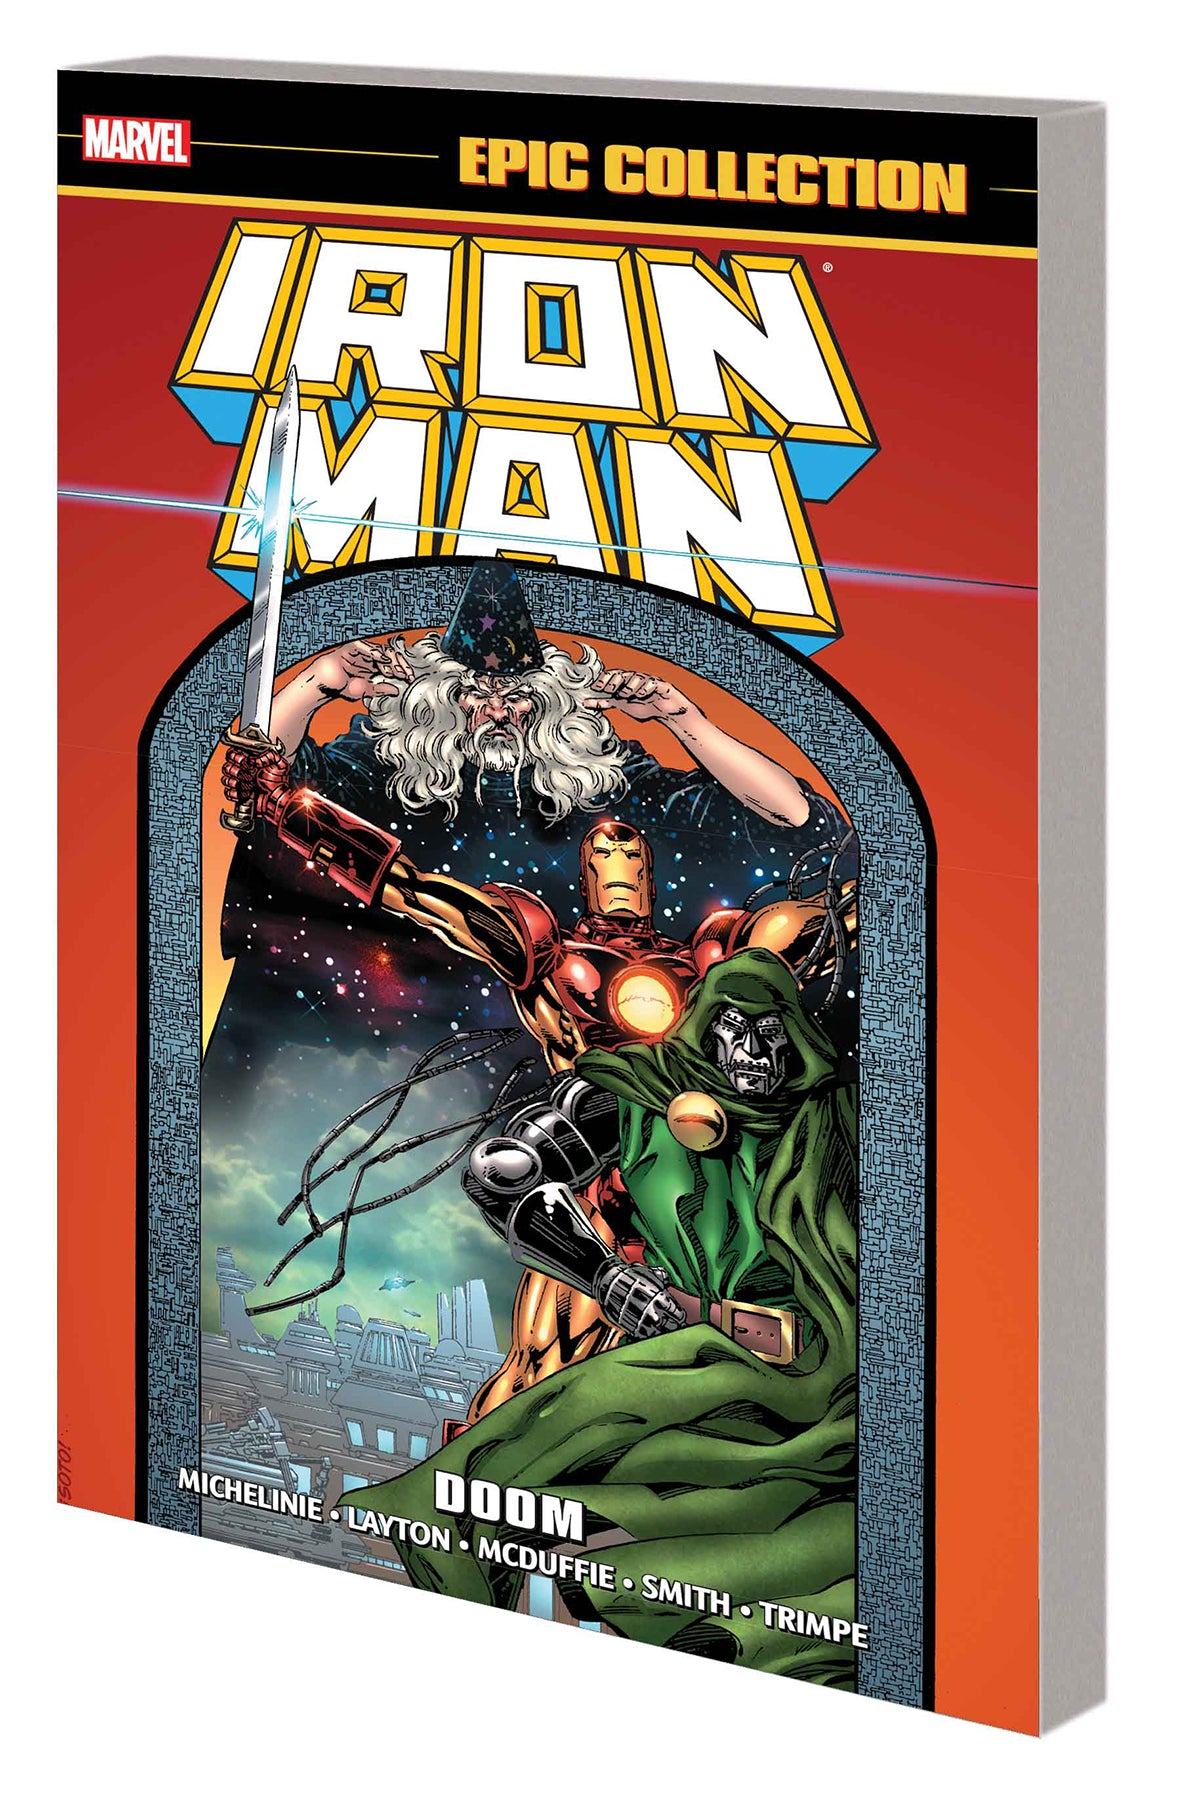 IRON MAN EPIC COLLECTION TP DOOM | Phoenix Comics and Games